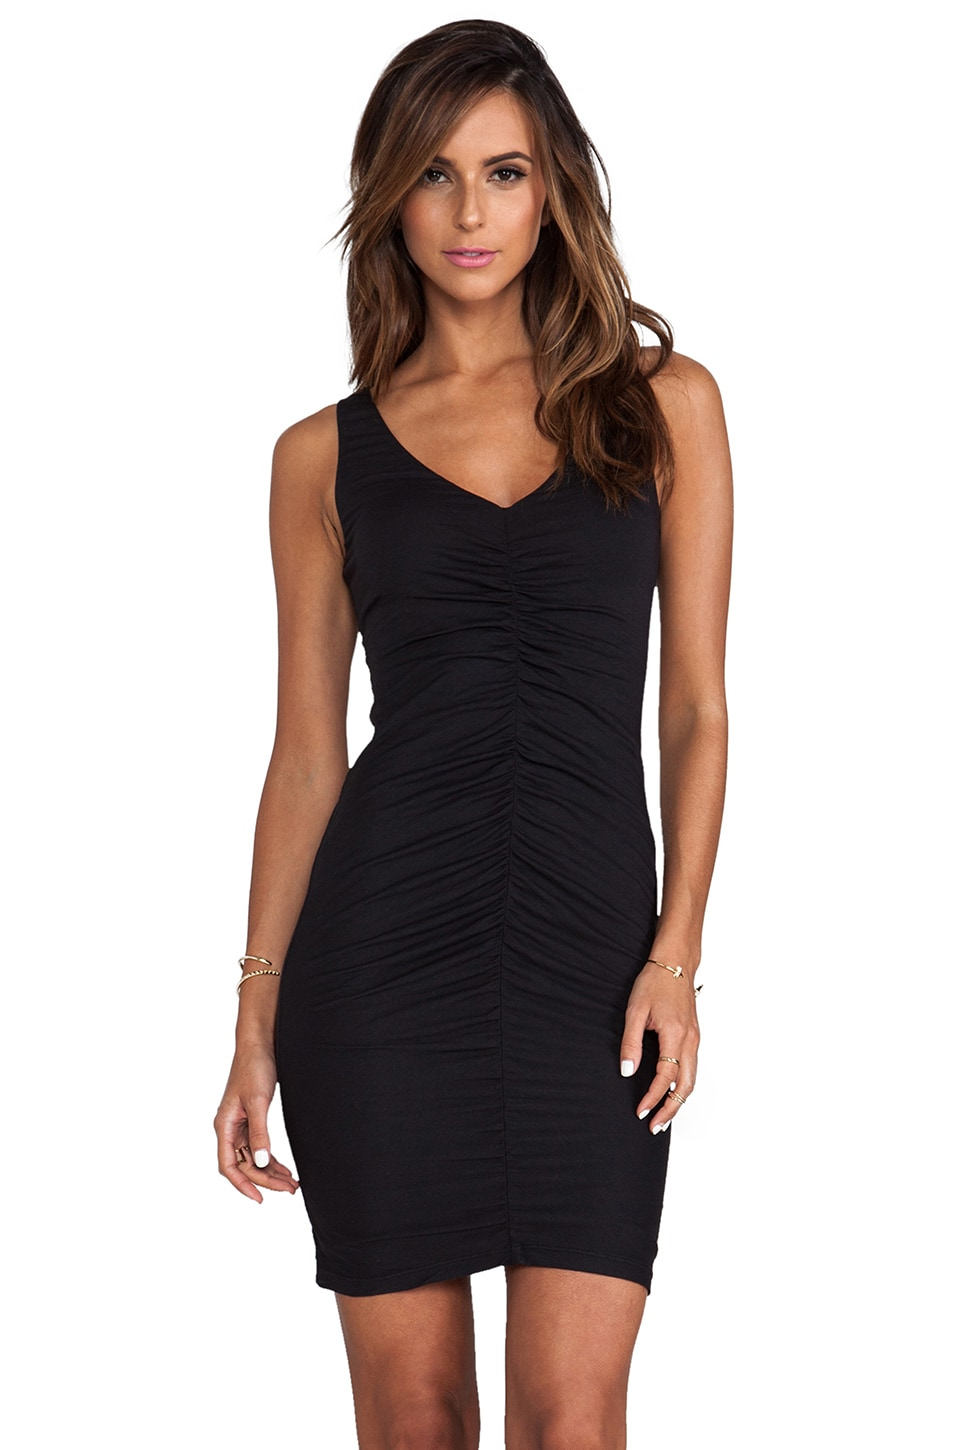 Velvet by Graham & Spencer Tivonia Gauzy Whisper Dress in Black